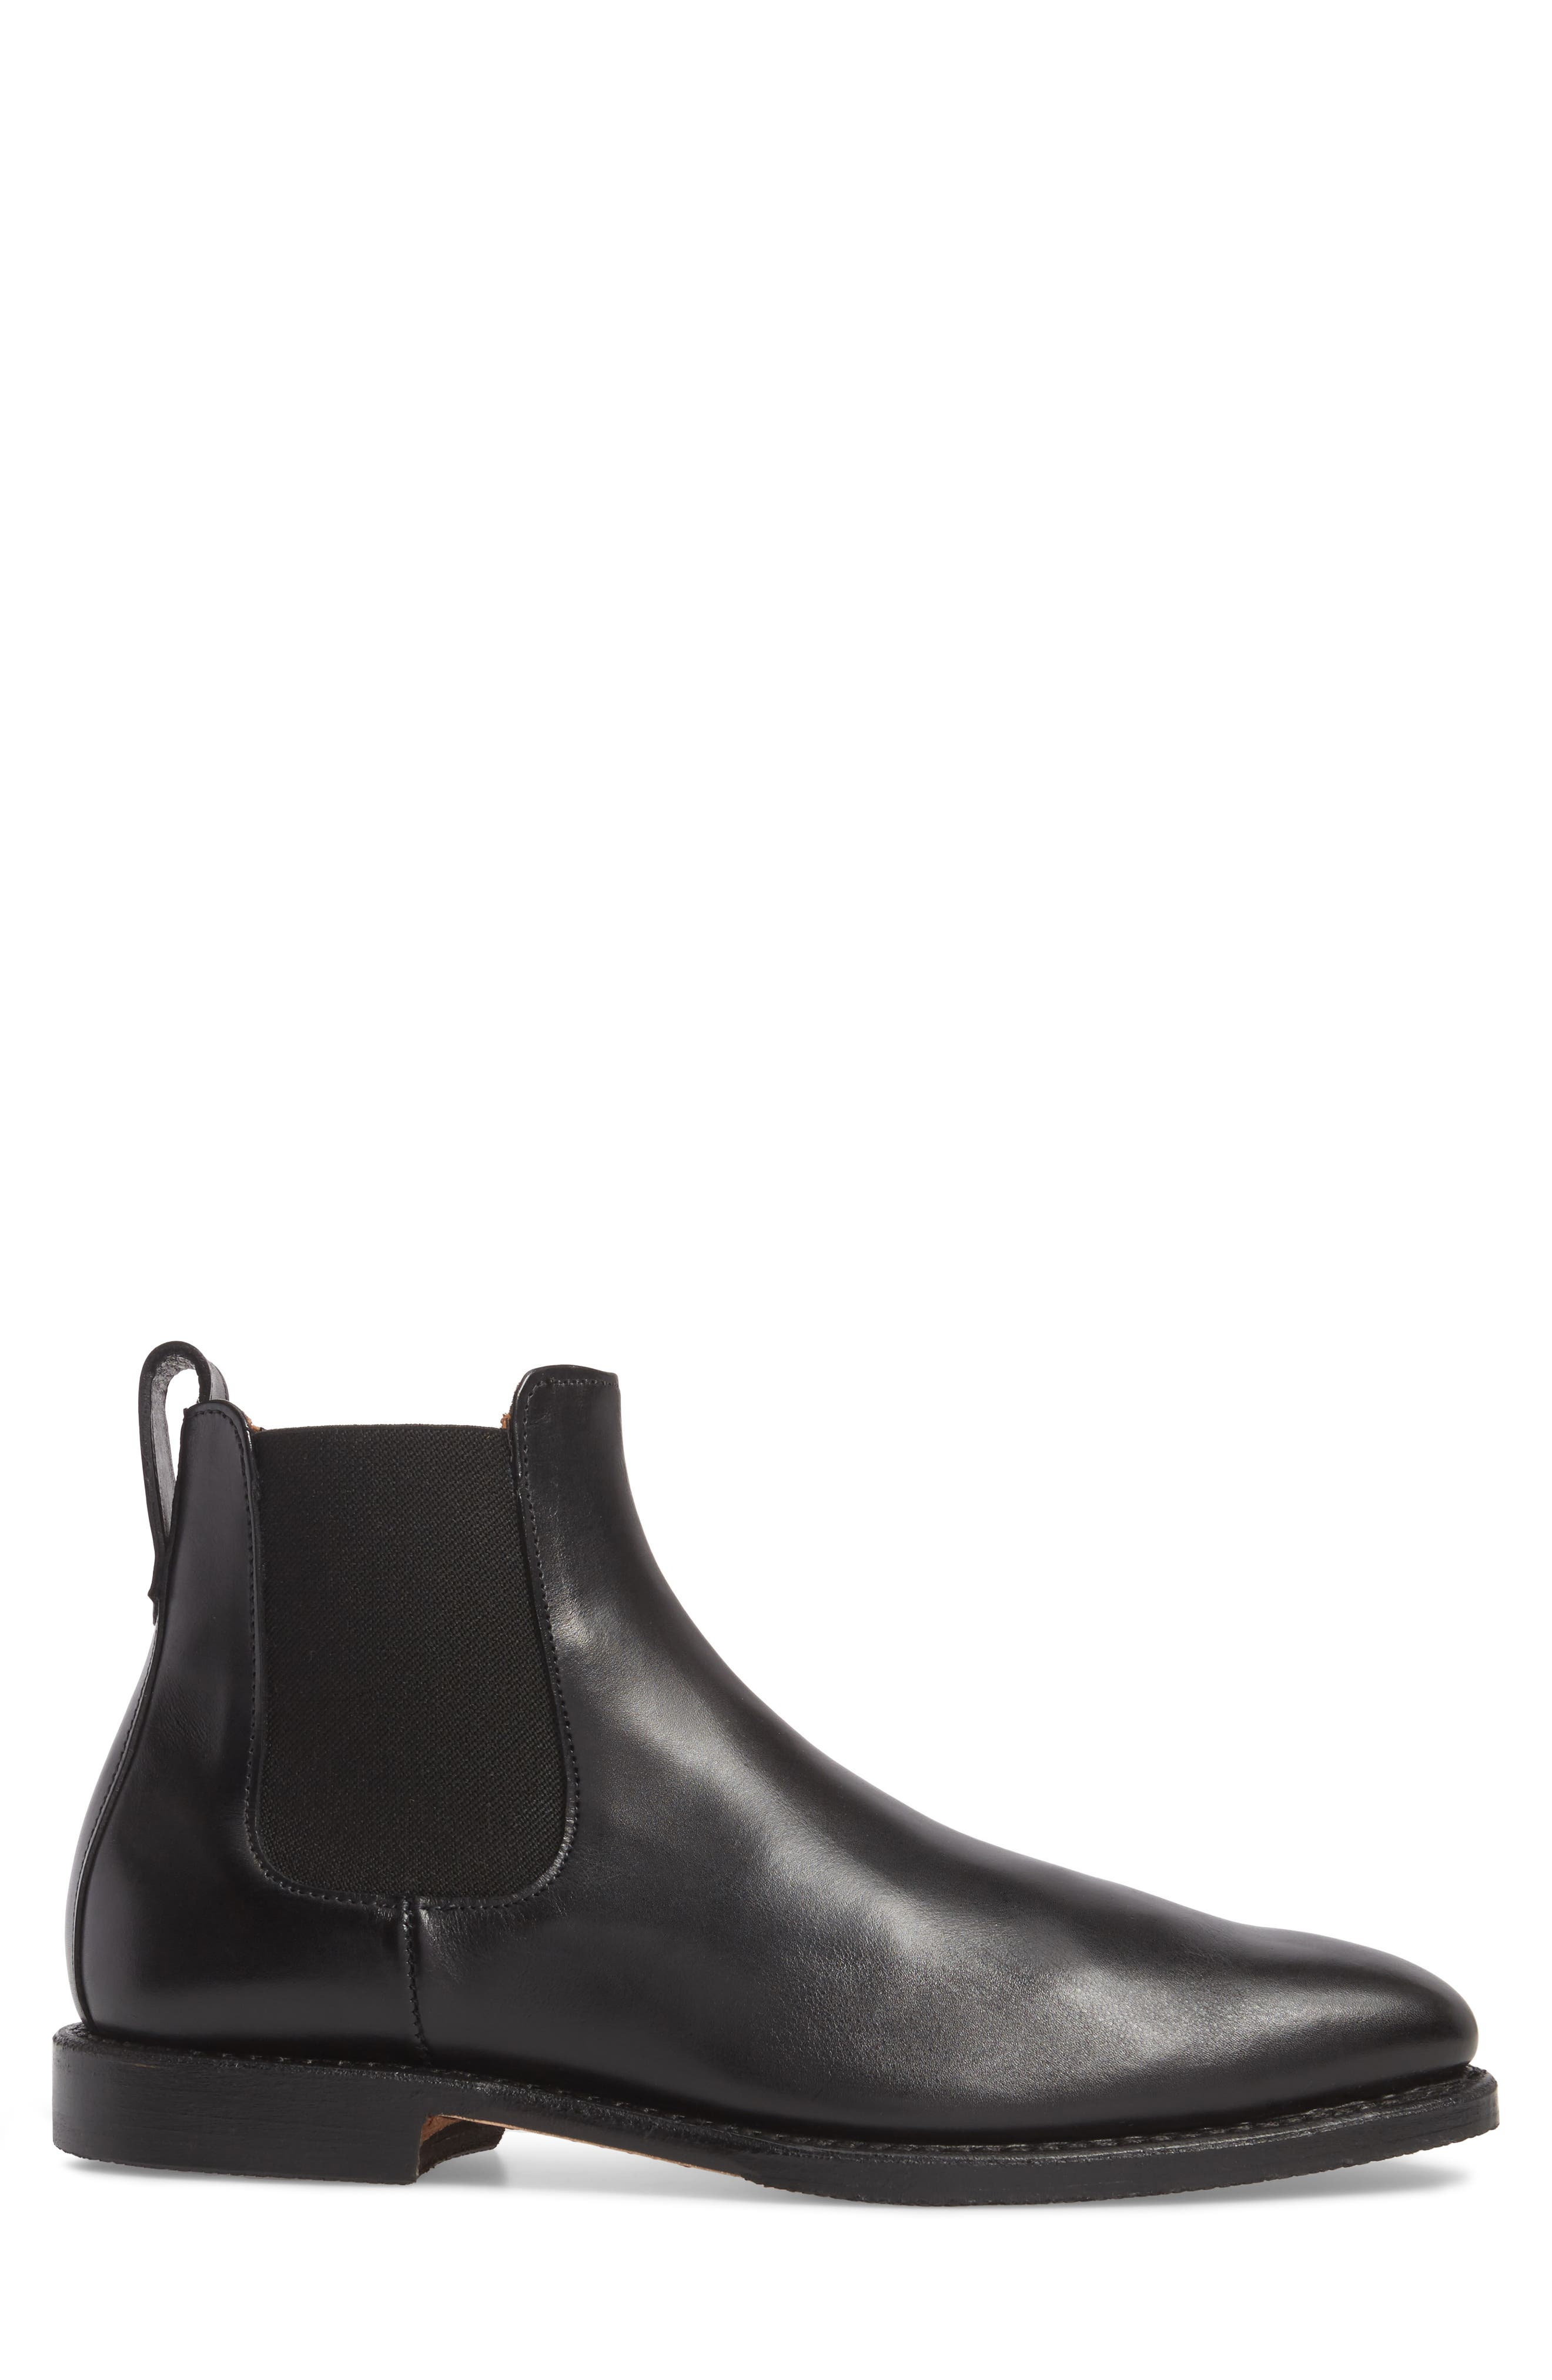 'Liverpool' Chelsea Boot,                             Alternate thumbnail 3, color,                             BLACK LEATHER